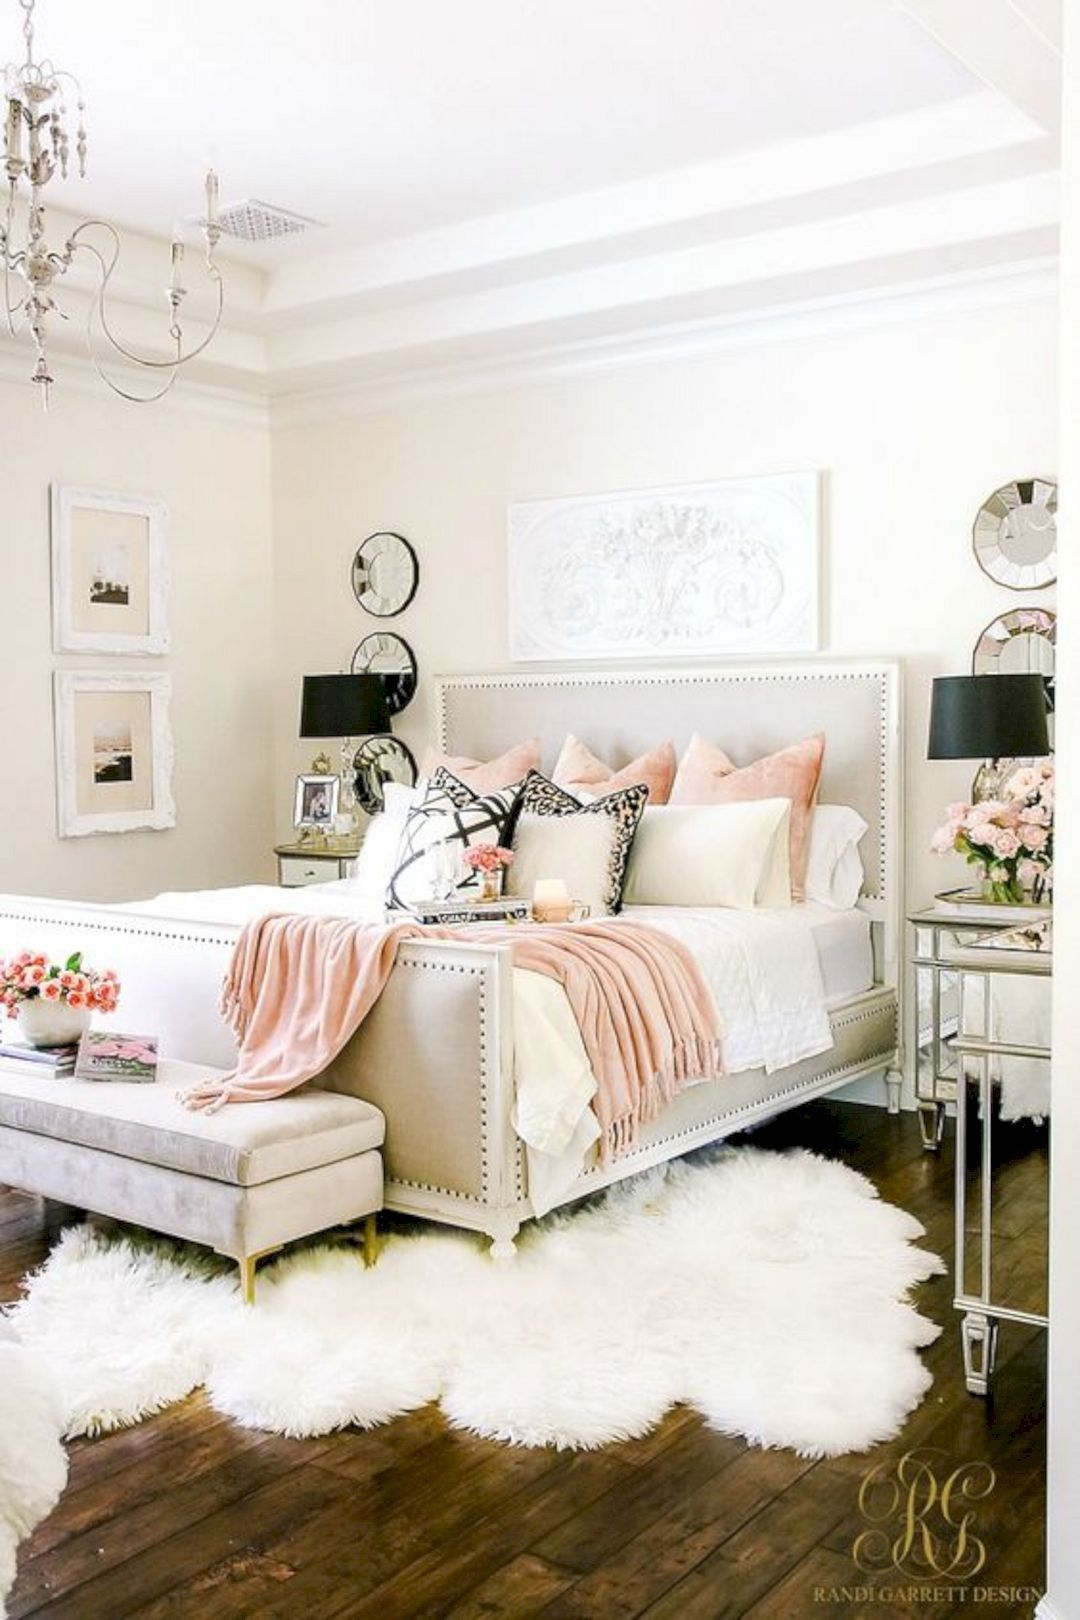 15 Elegant Bedroom Designs